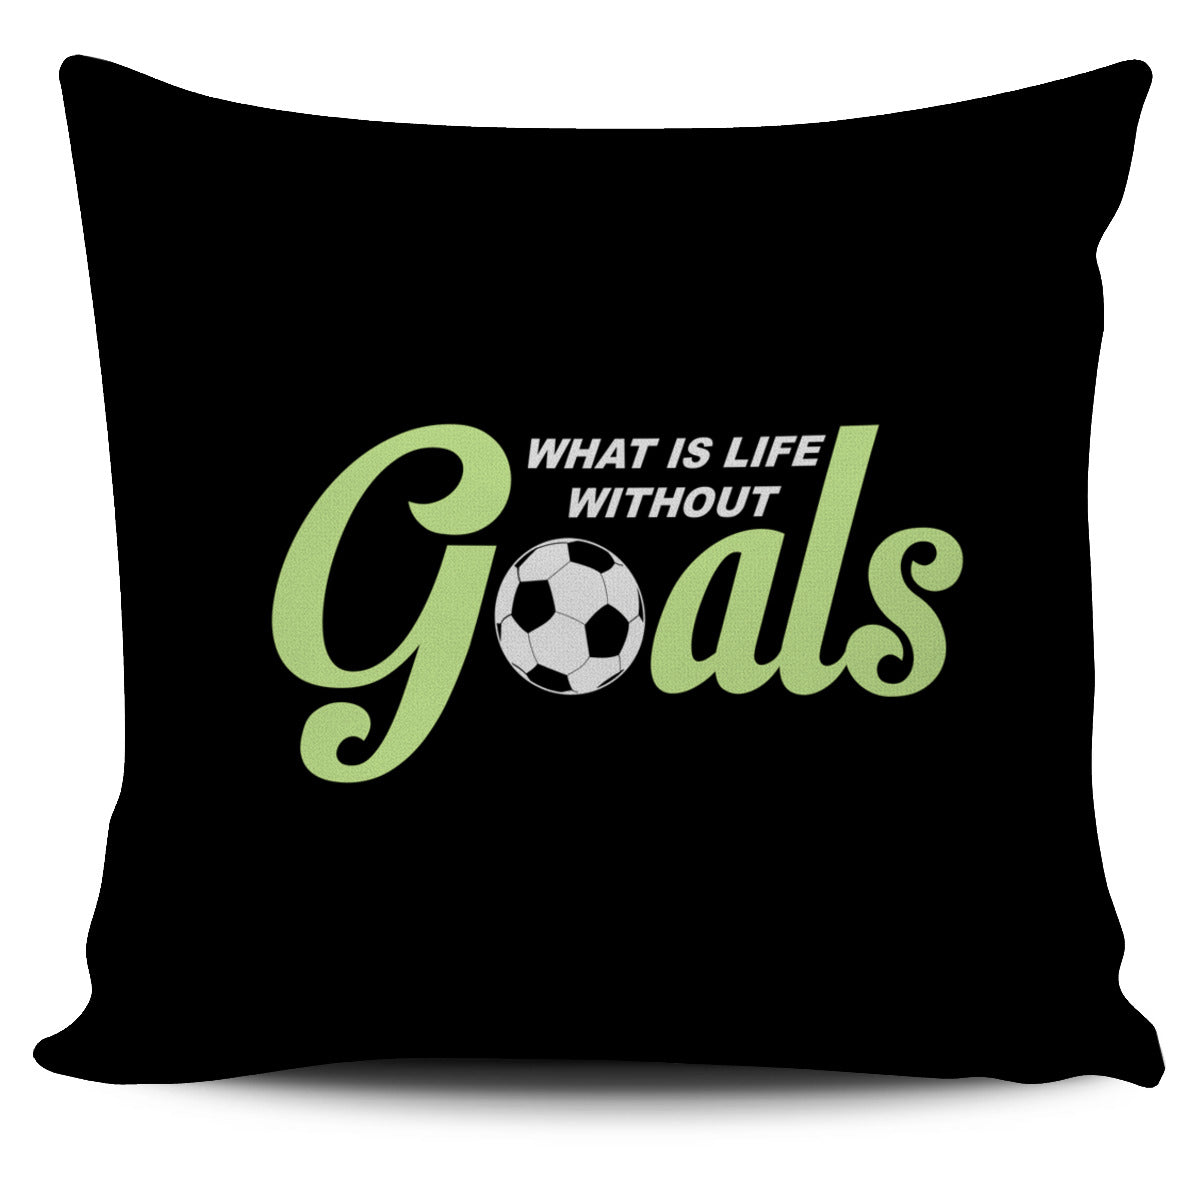 What Is Life Without Goals Pillow Cover AL92